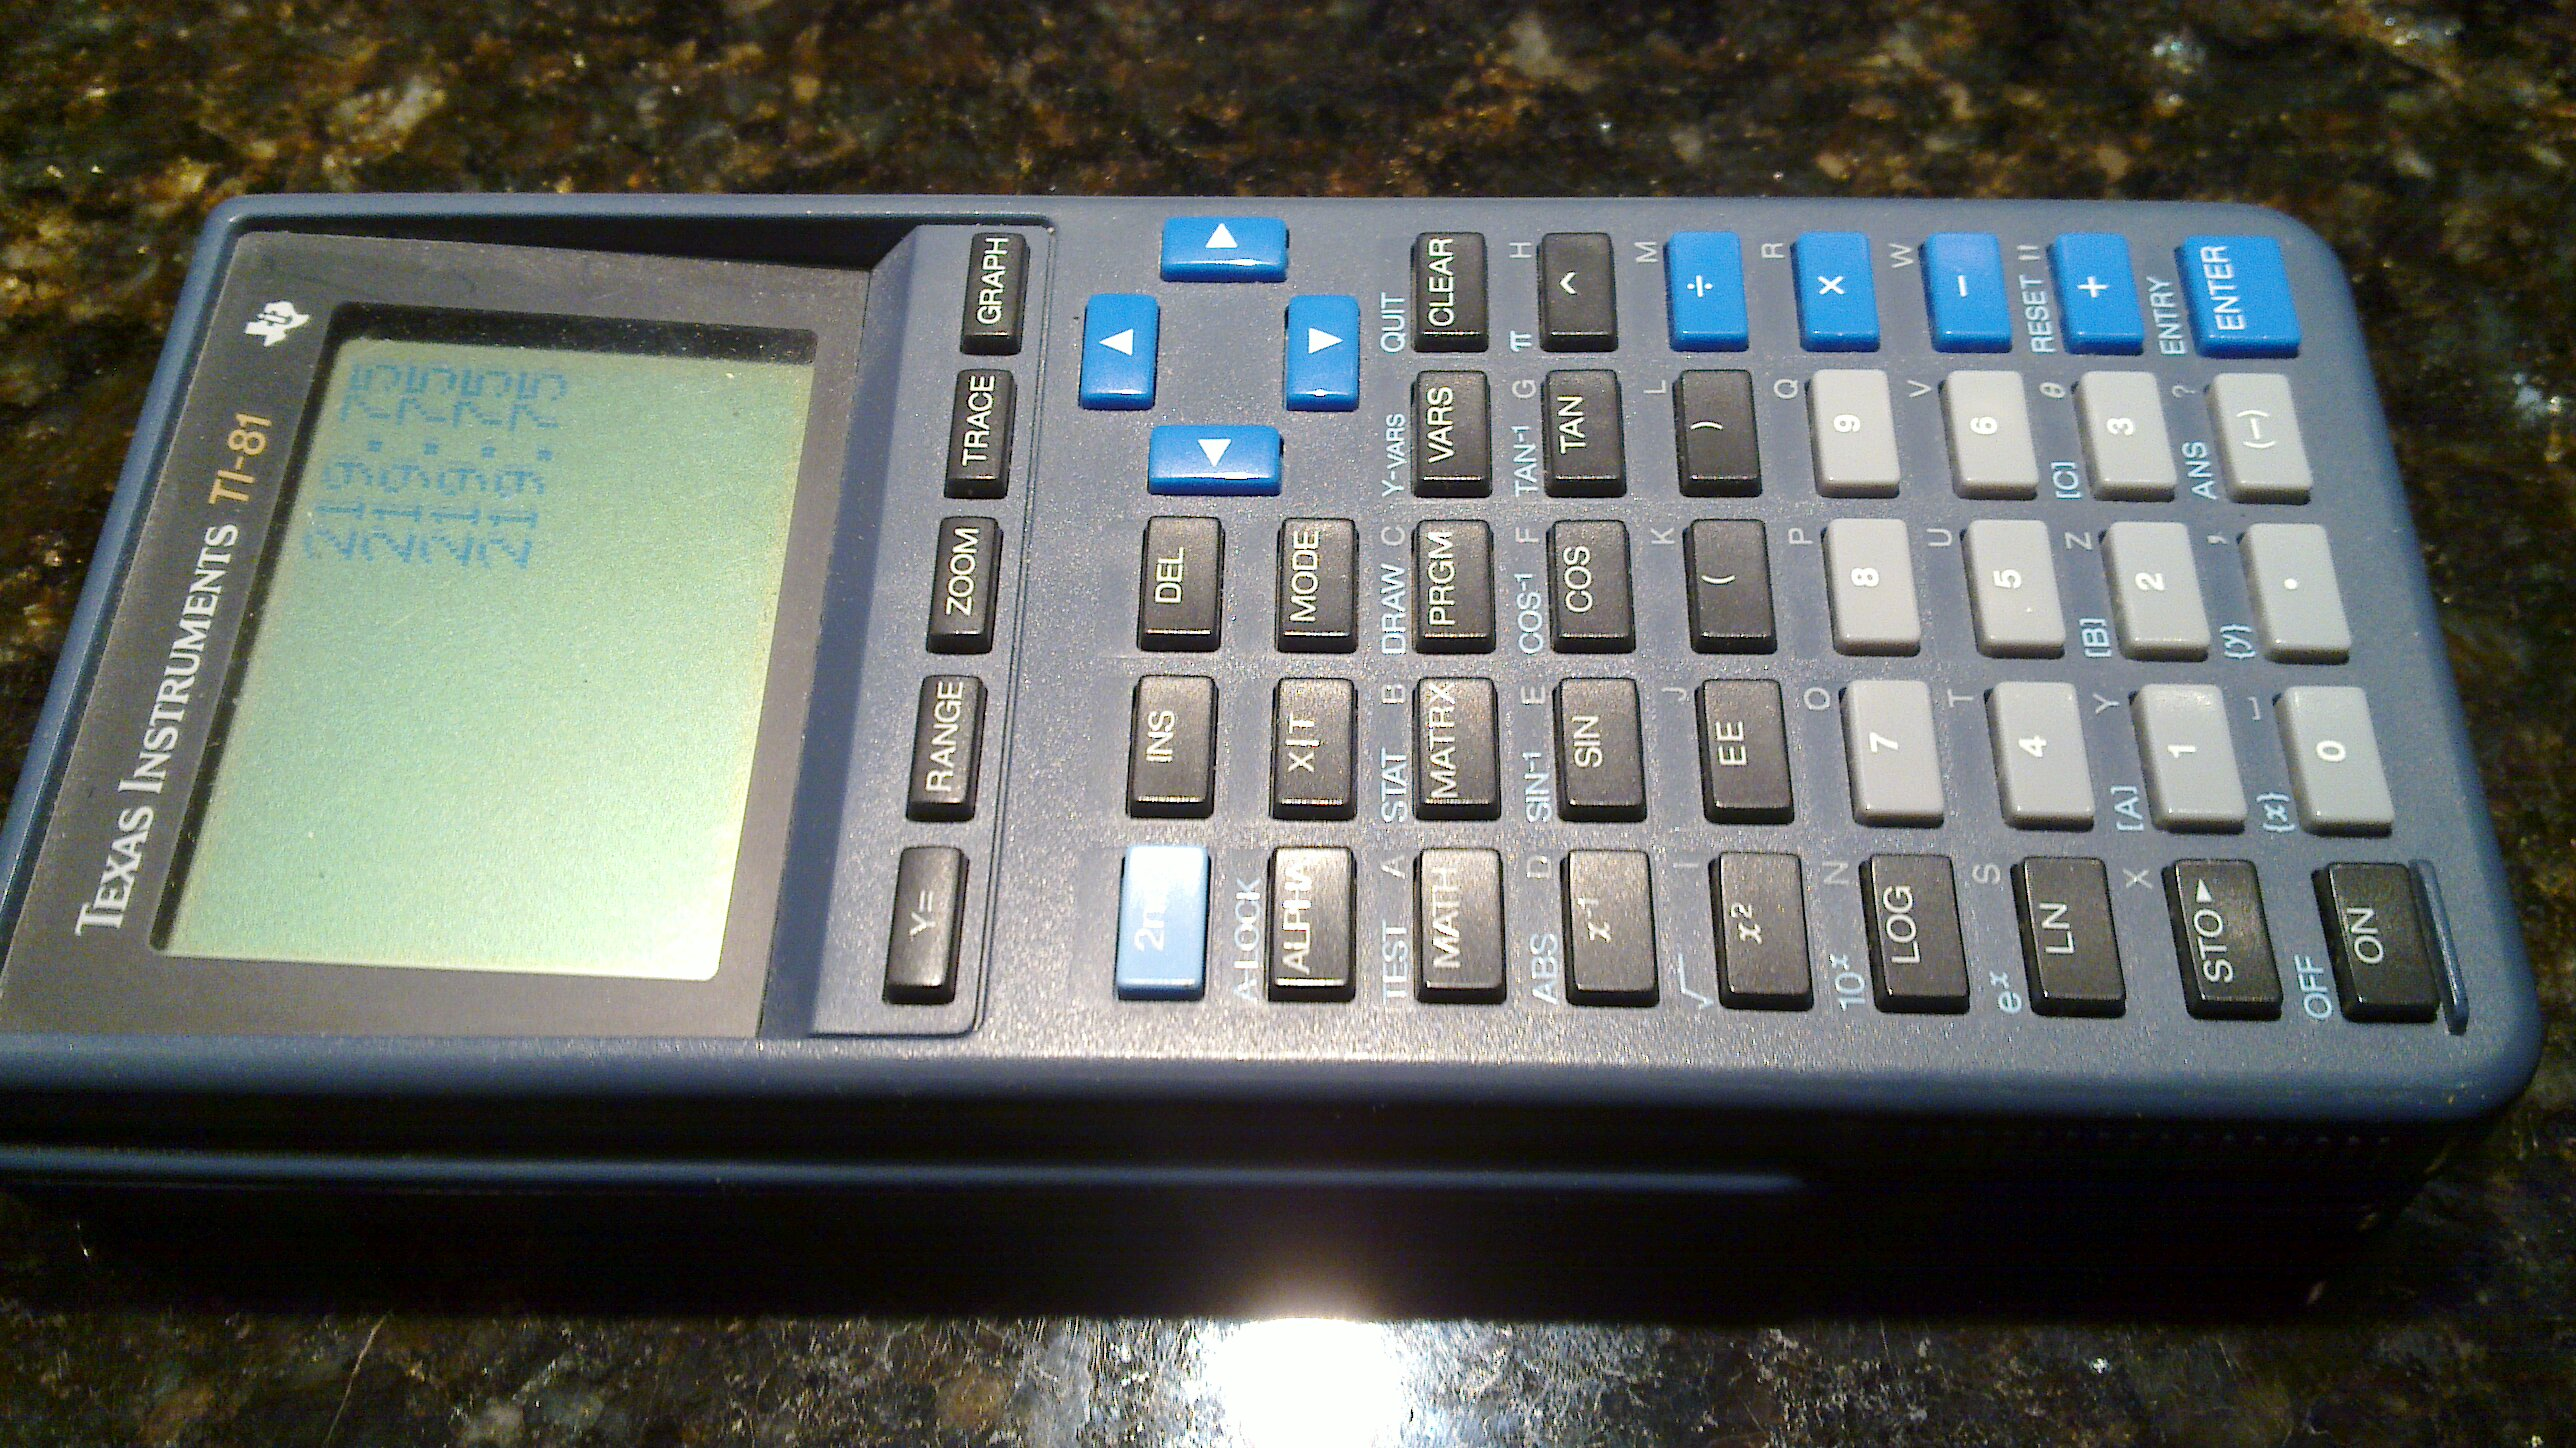 TI-81 Graphing Calculator for sale